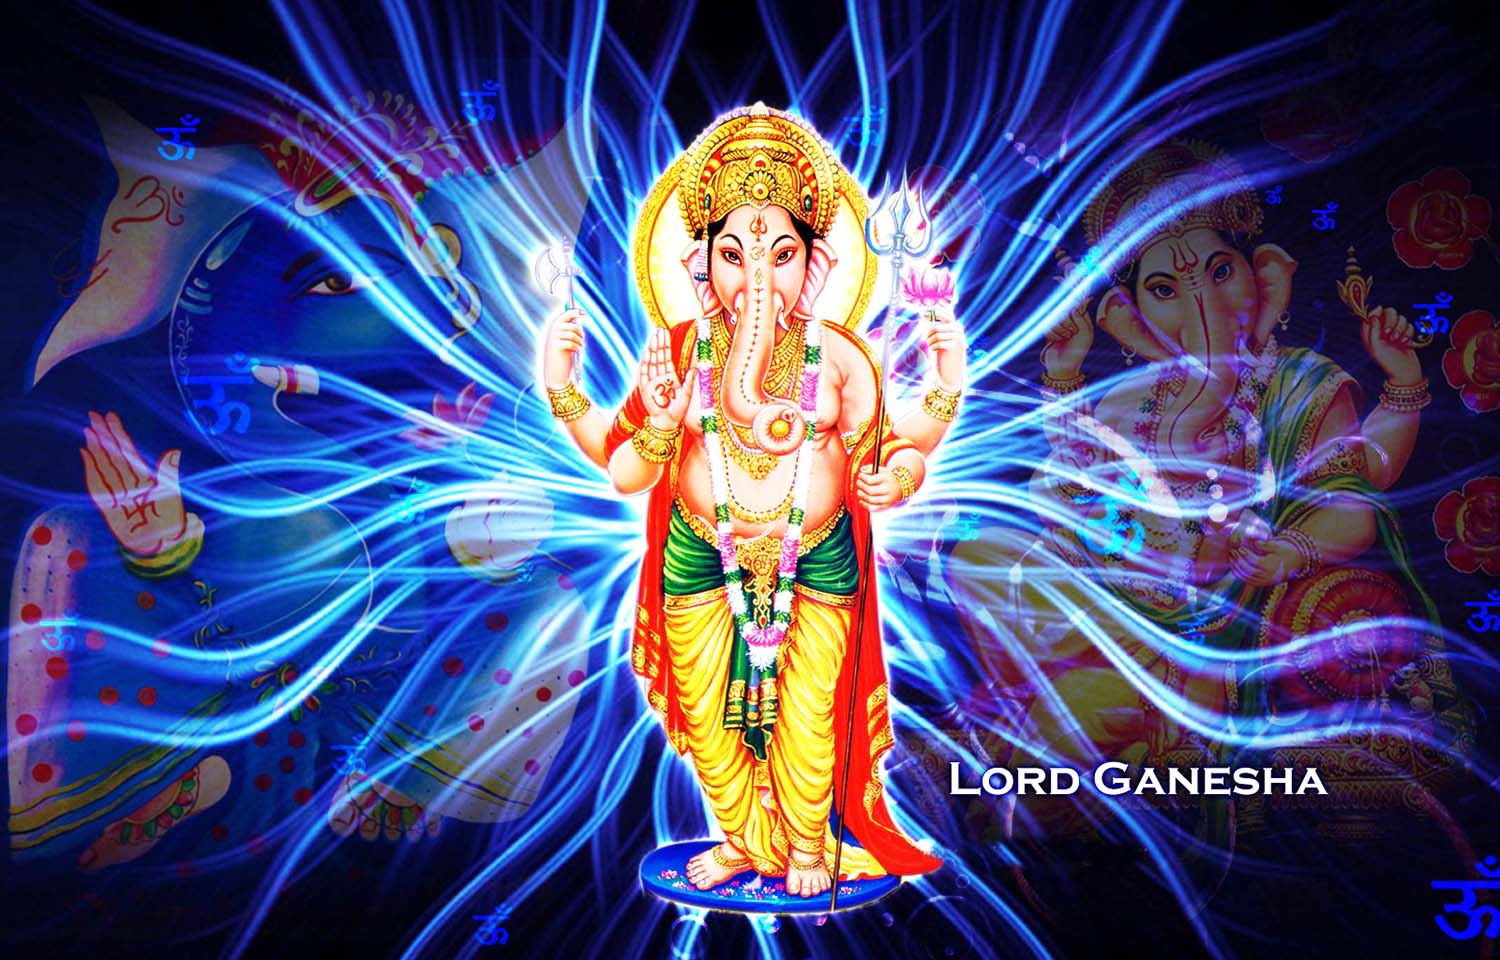 Standing Ganpati wallpaper!